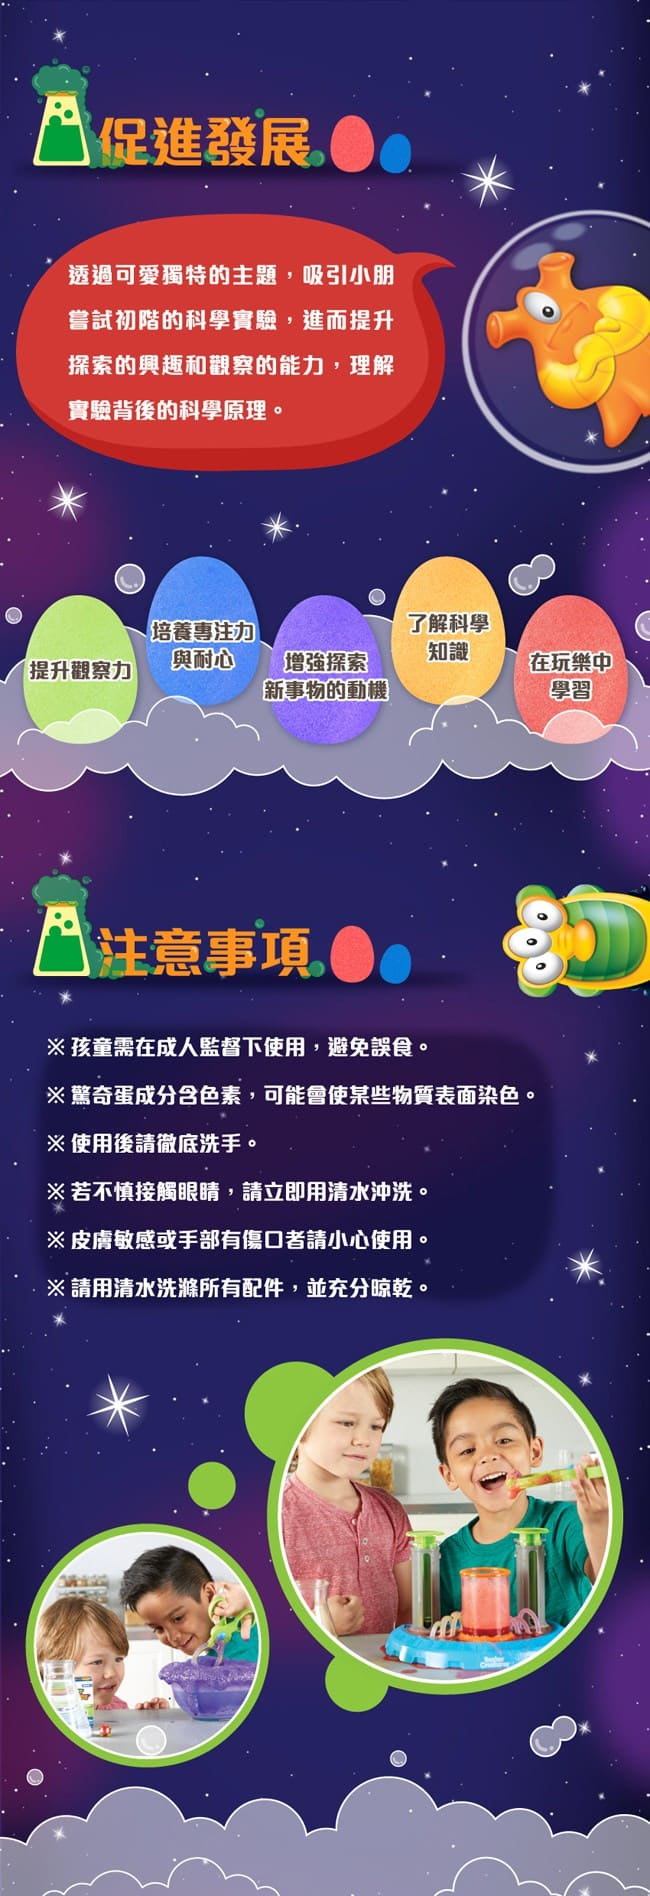 learning resources 玩具 learning resources 實驗組 玩具 學習 玩具